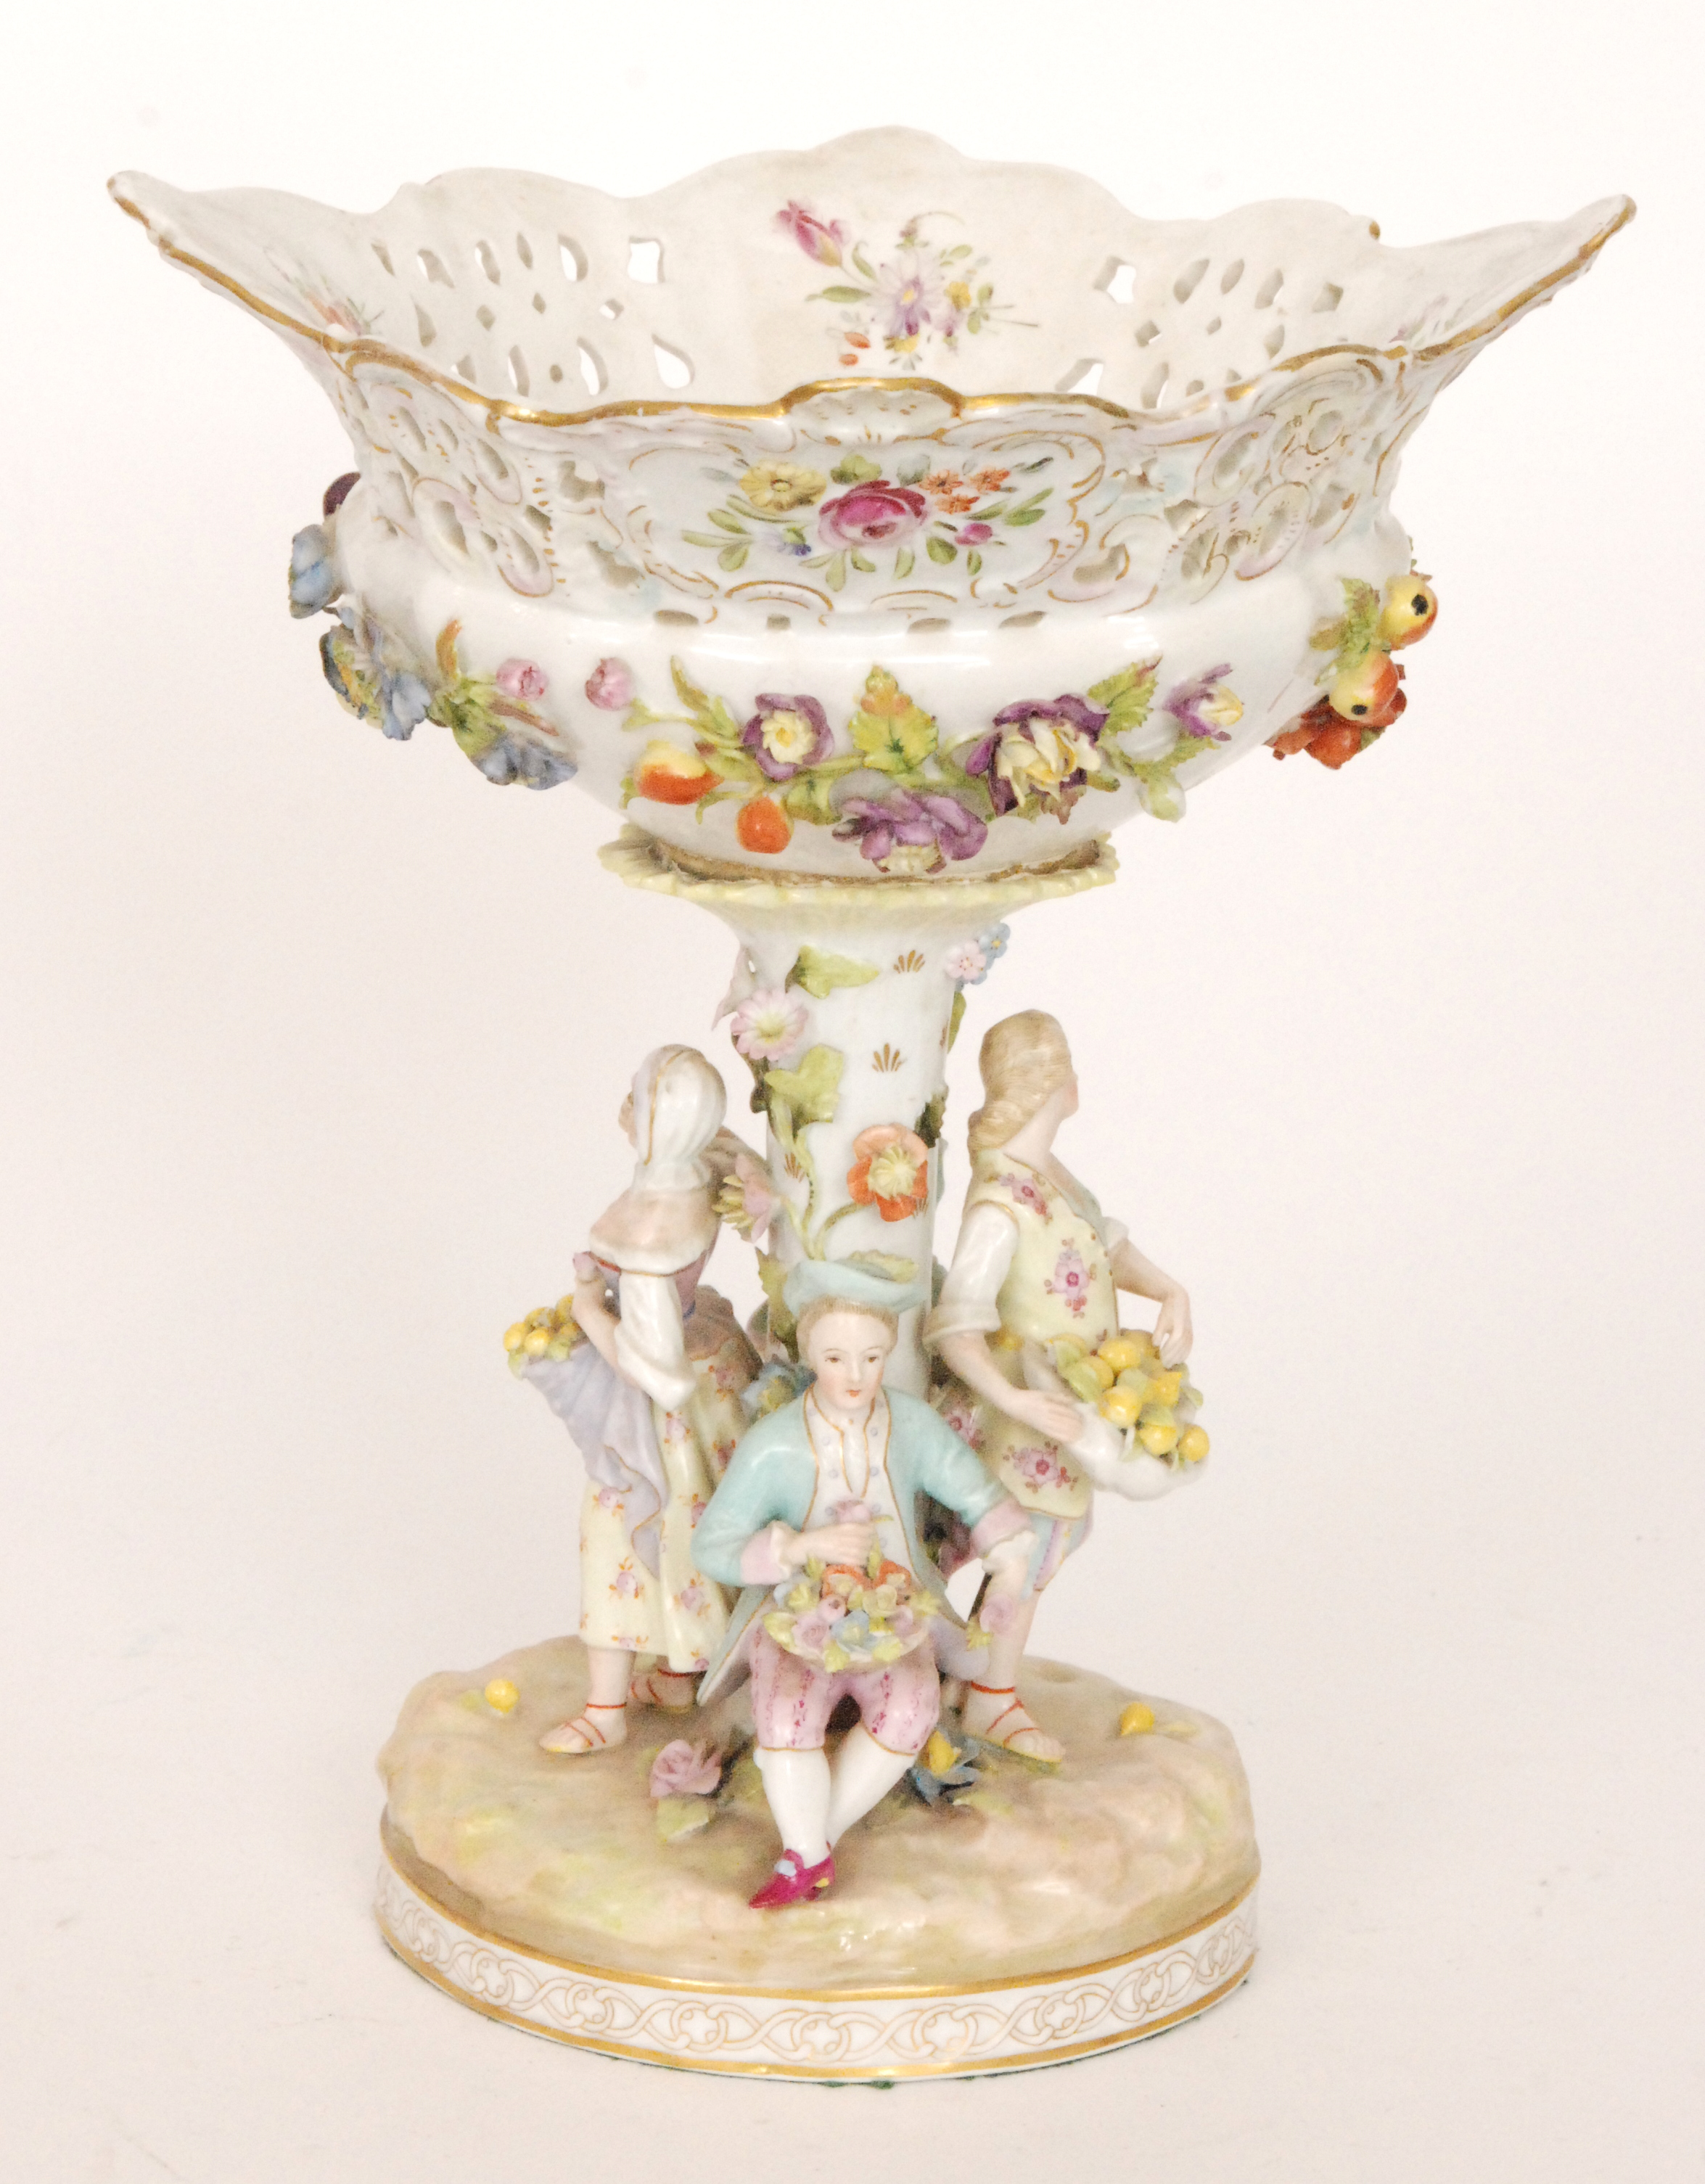 Lot 45 - An early 20th Century floral encrusted pedestal fruit basket with figures stood around the central